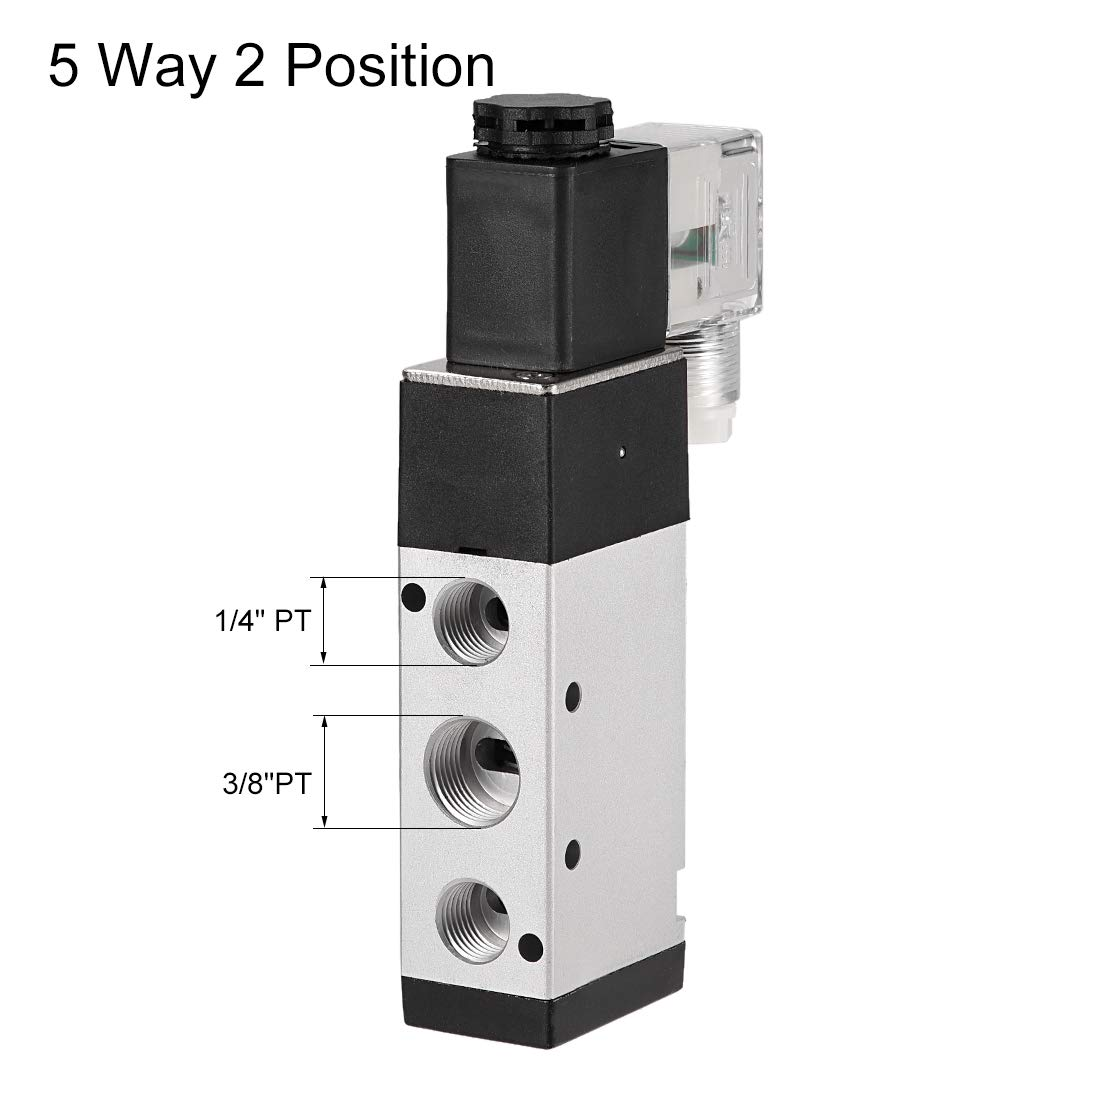 uxcell DC 12V 5 Way 2 Position 3//8 inchesPT,Pneumatic Air Solenoid Valve,Internally Single Piloted Acting Type,Red Light,4V310-10